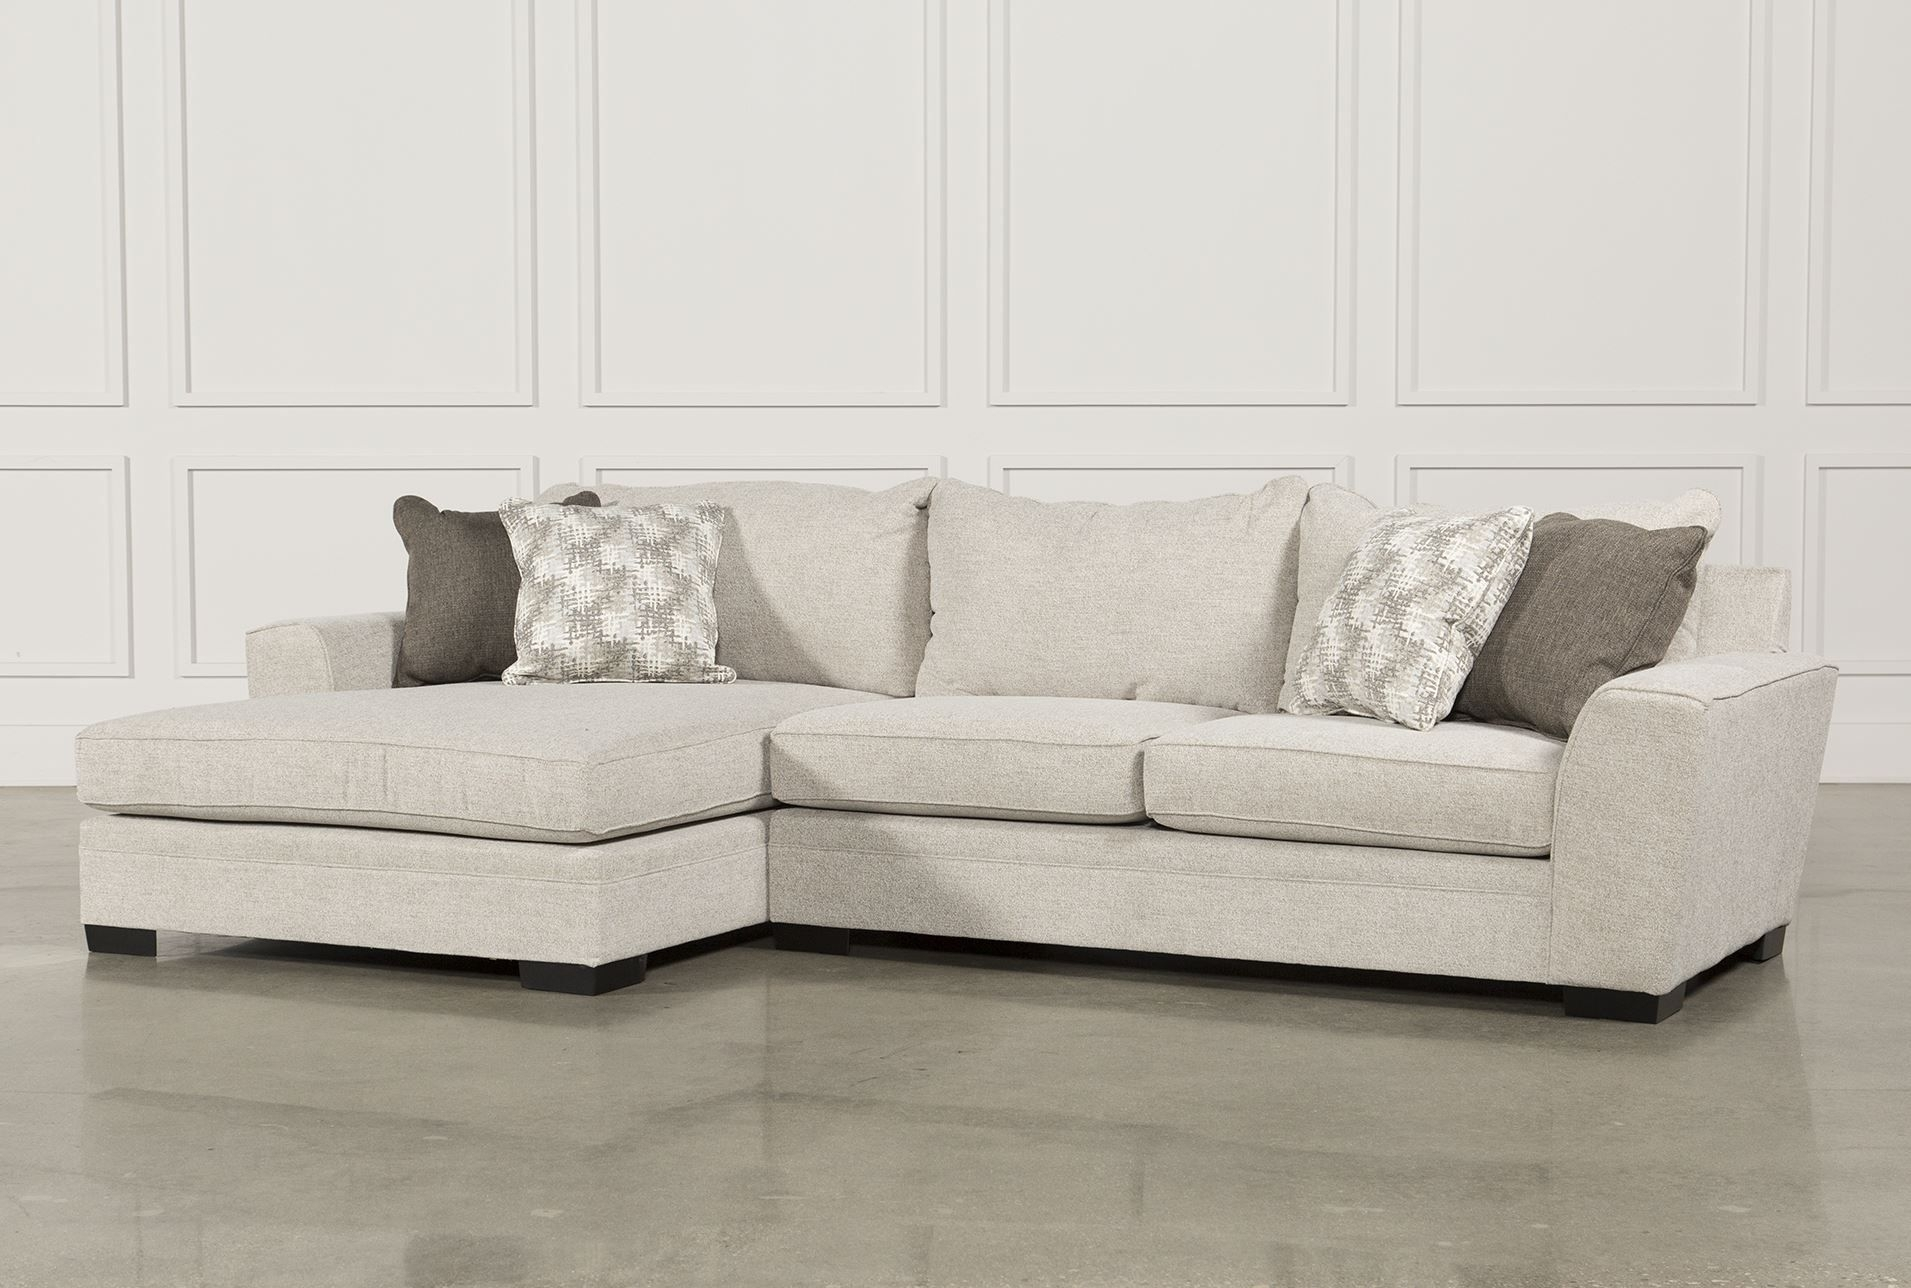 Delano 2 Piece Sectional W/laf Oversized Chaise | Living Room Pertaining To Delano 2 Piece Sectionals With Laf Oversized Chaise (Image 9 of 25)